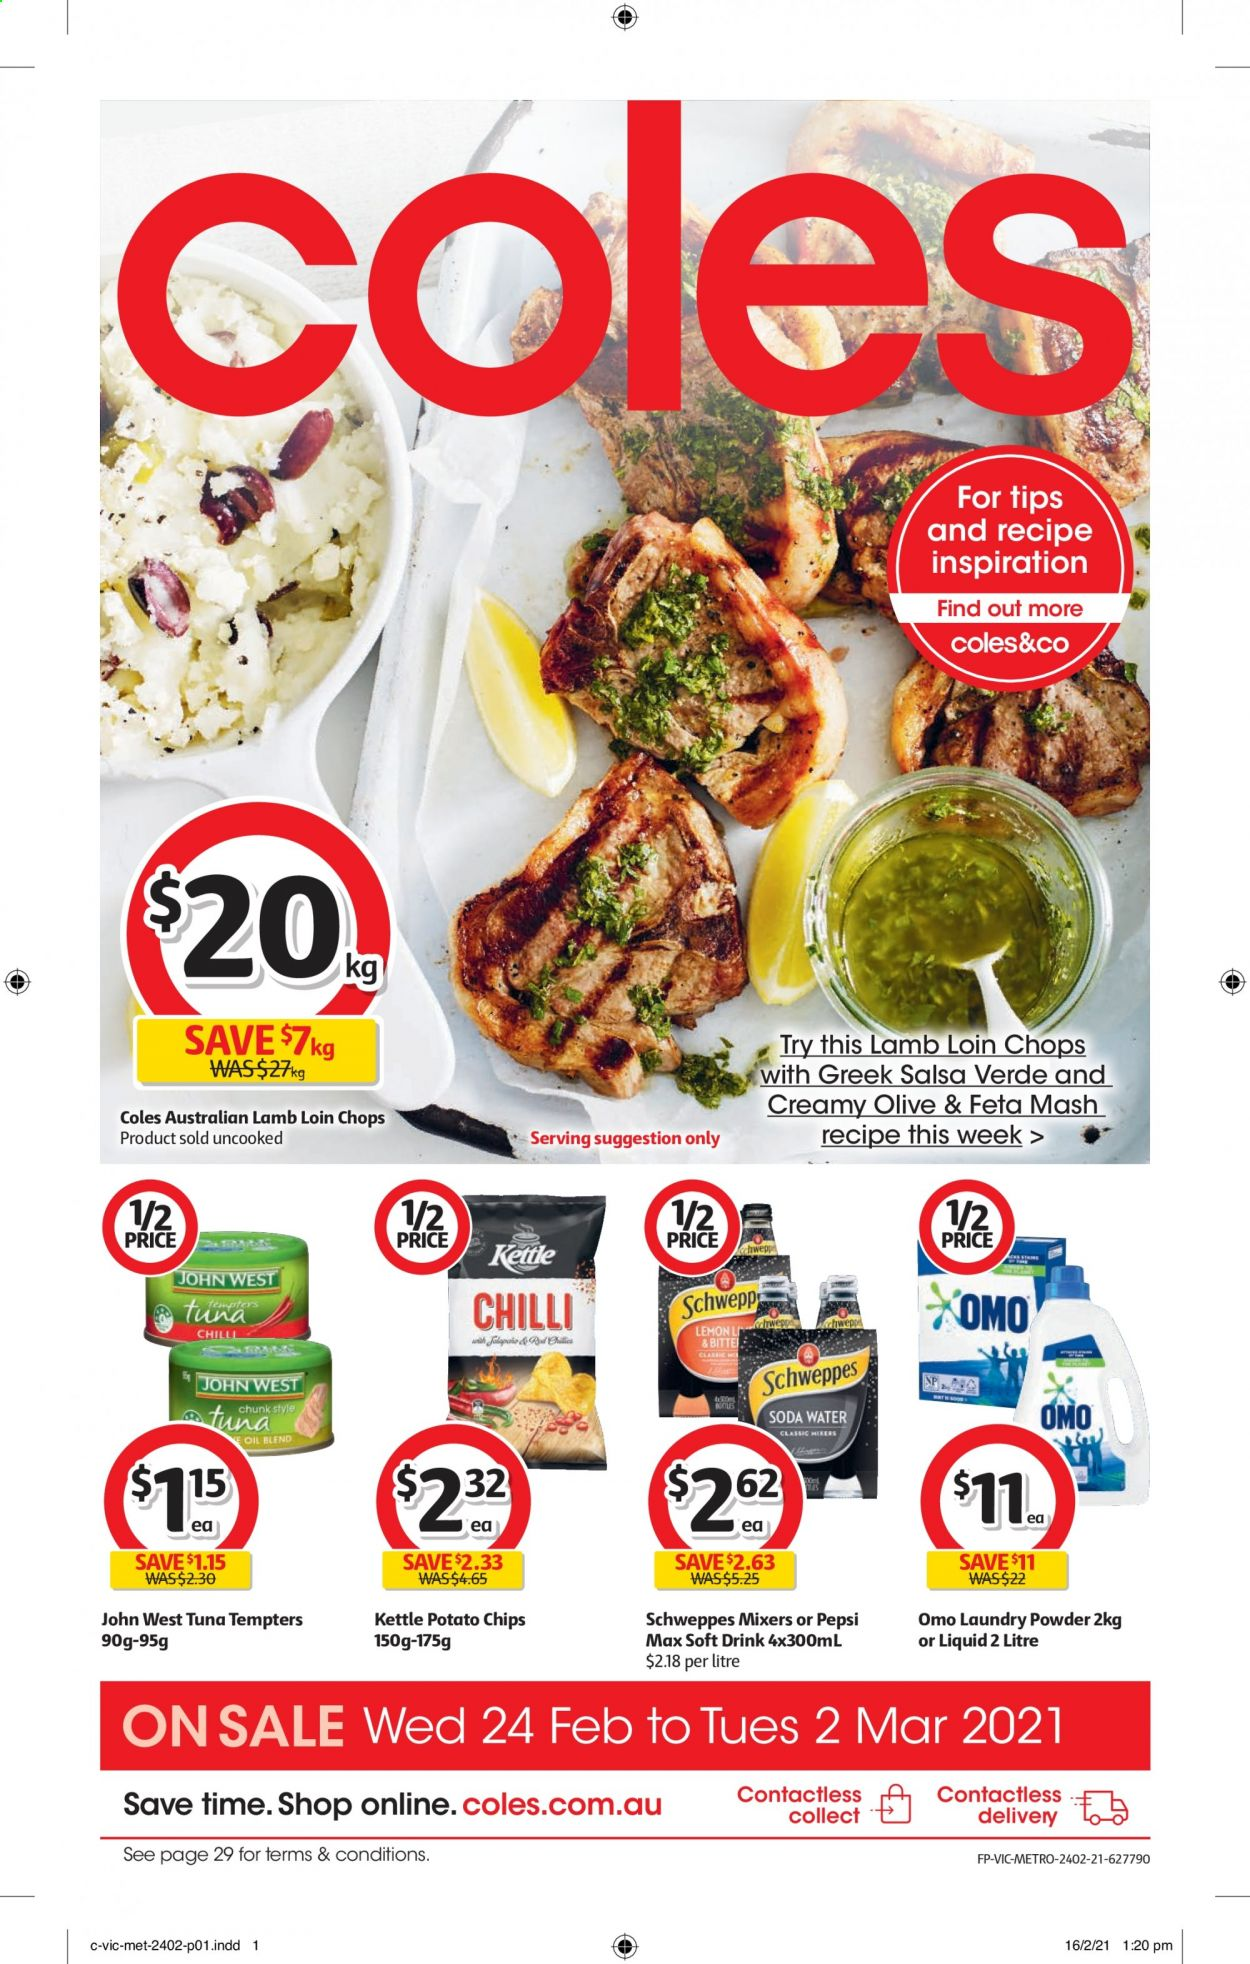 Coles Catalogue - 24.2.2021 - 2.3.2021 - Sales products - tuna, feta cheese, salsa, potato chips, chips, oil, Schweppes, Pepsi, soda, Pepsi Max, soft drink, lamb loin, lamb meat, Omo, laundry powder, kettle. Page 1.